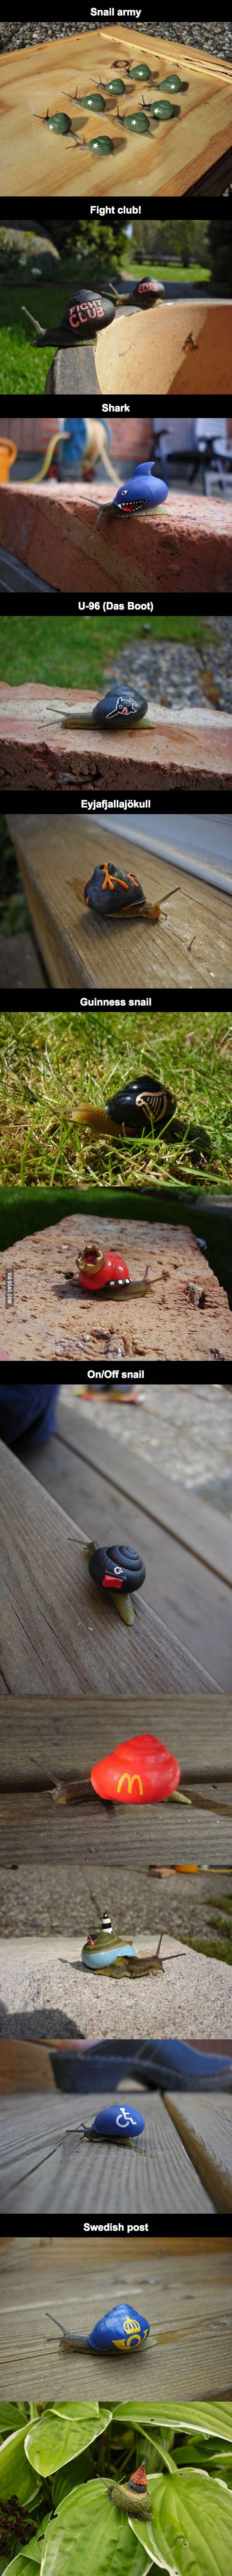 A-Swedish-Guy-Lost-His-Job-Then-He-Took-Up-Snail-Painting-As-A-Hobby